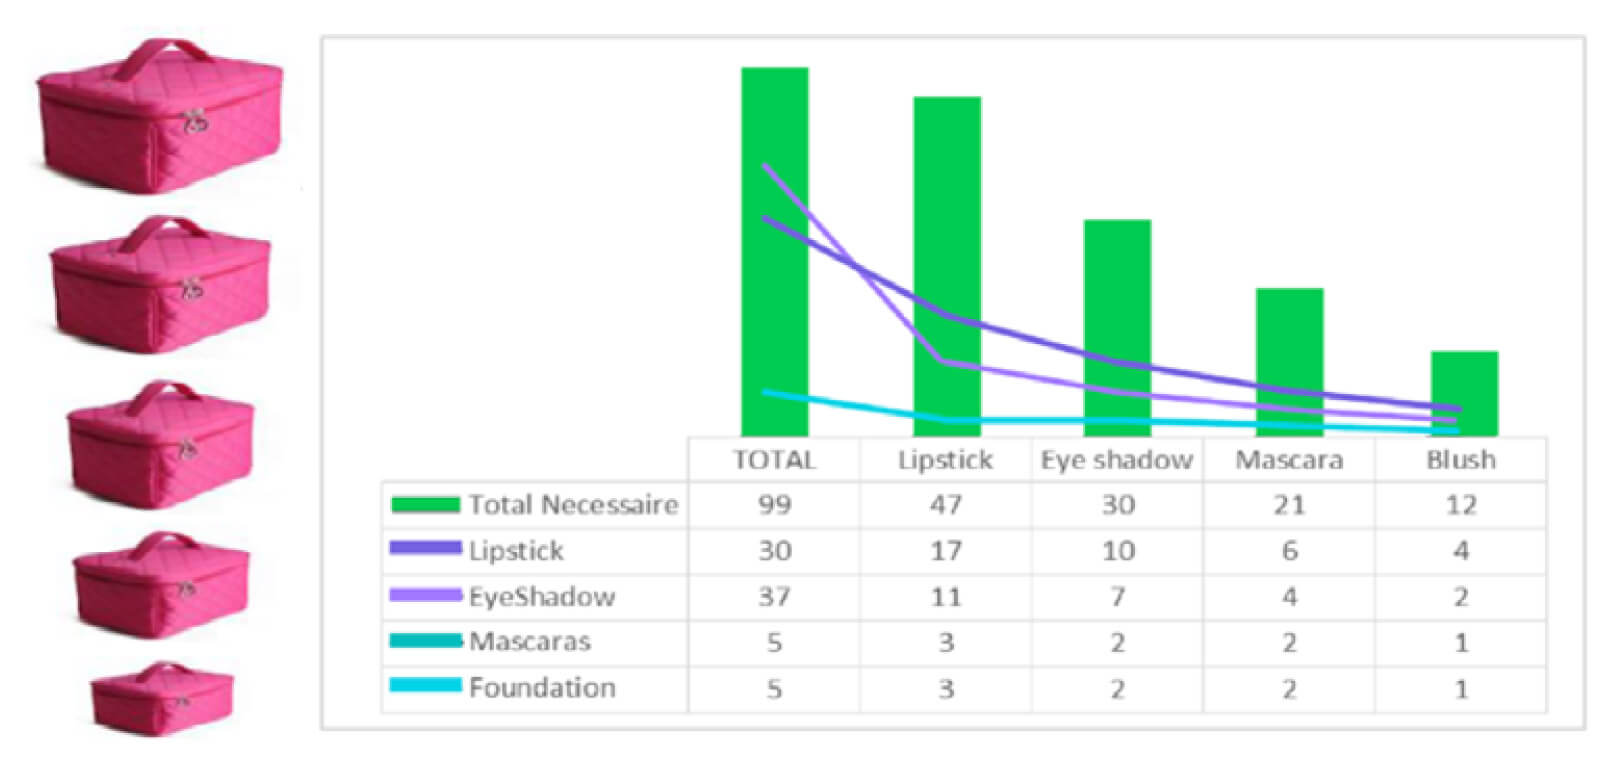 A graph depicting survey data of beauty bag contents including lipstick, eye shadow, mascara, and blush.